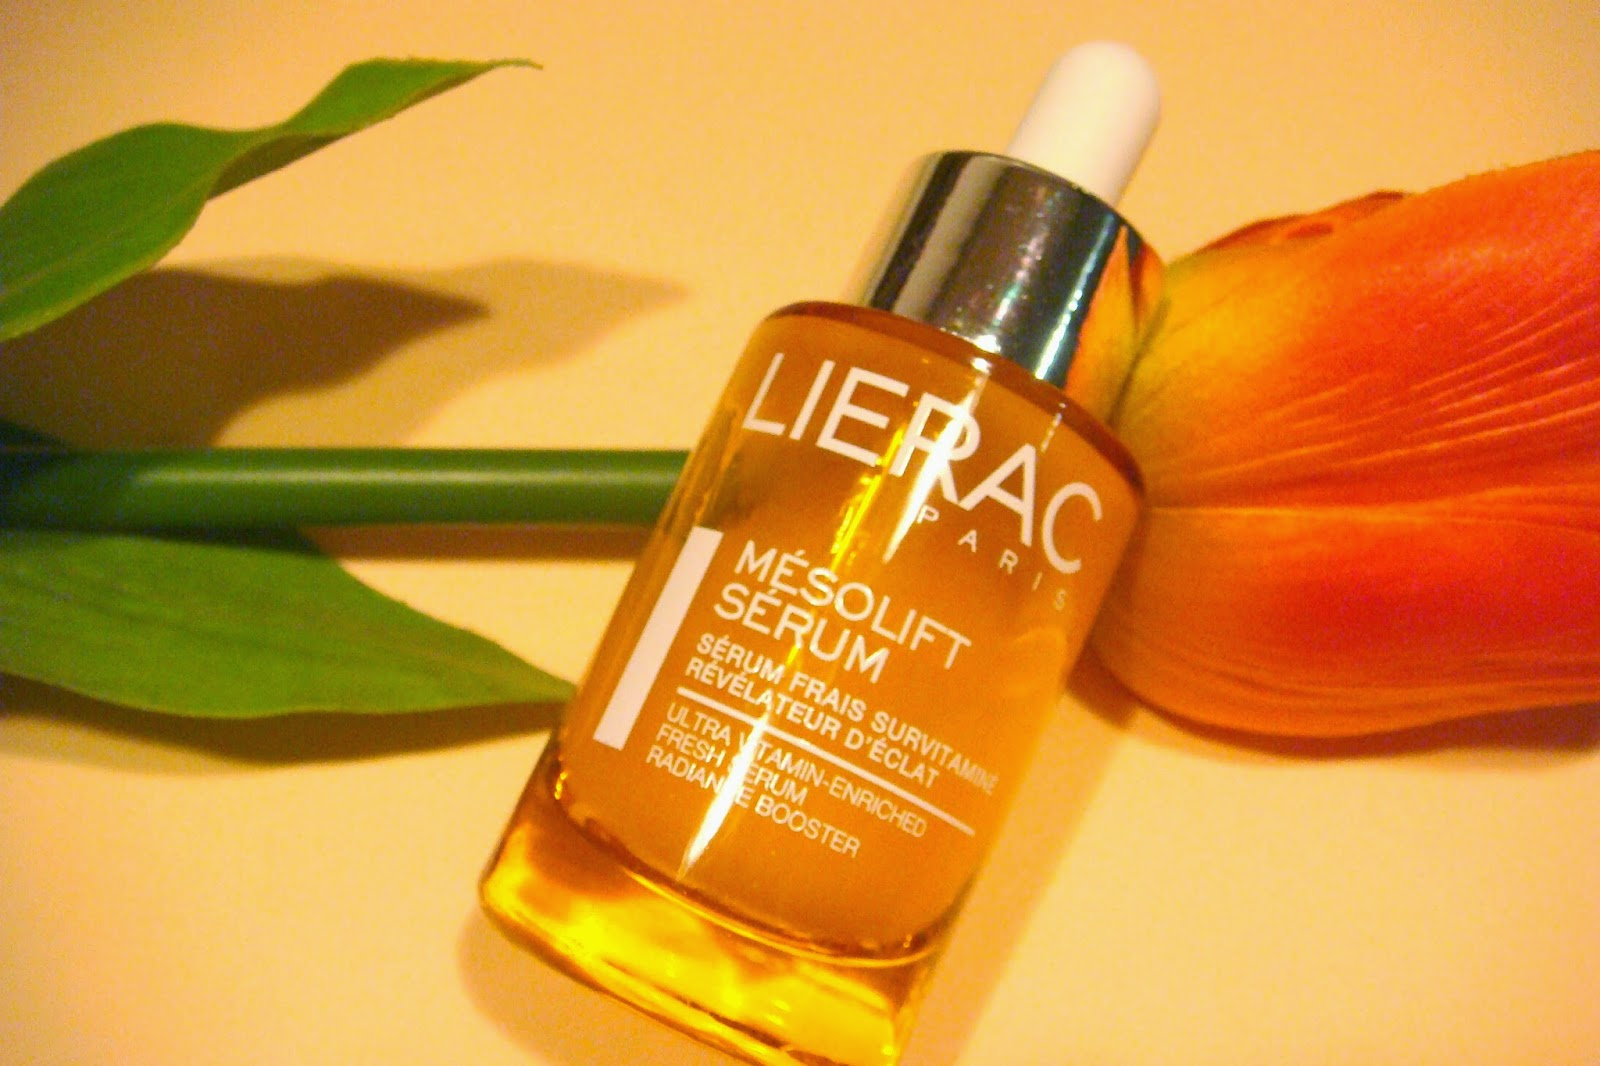 Mesolift Serum LIERAC